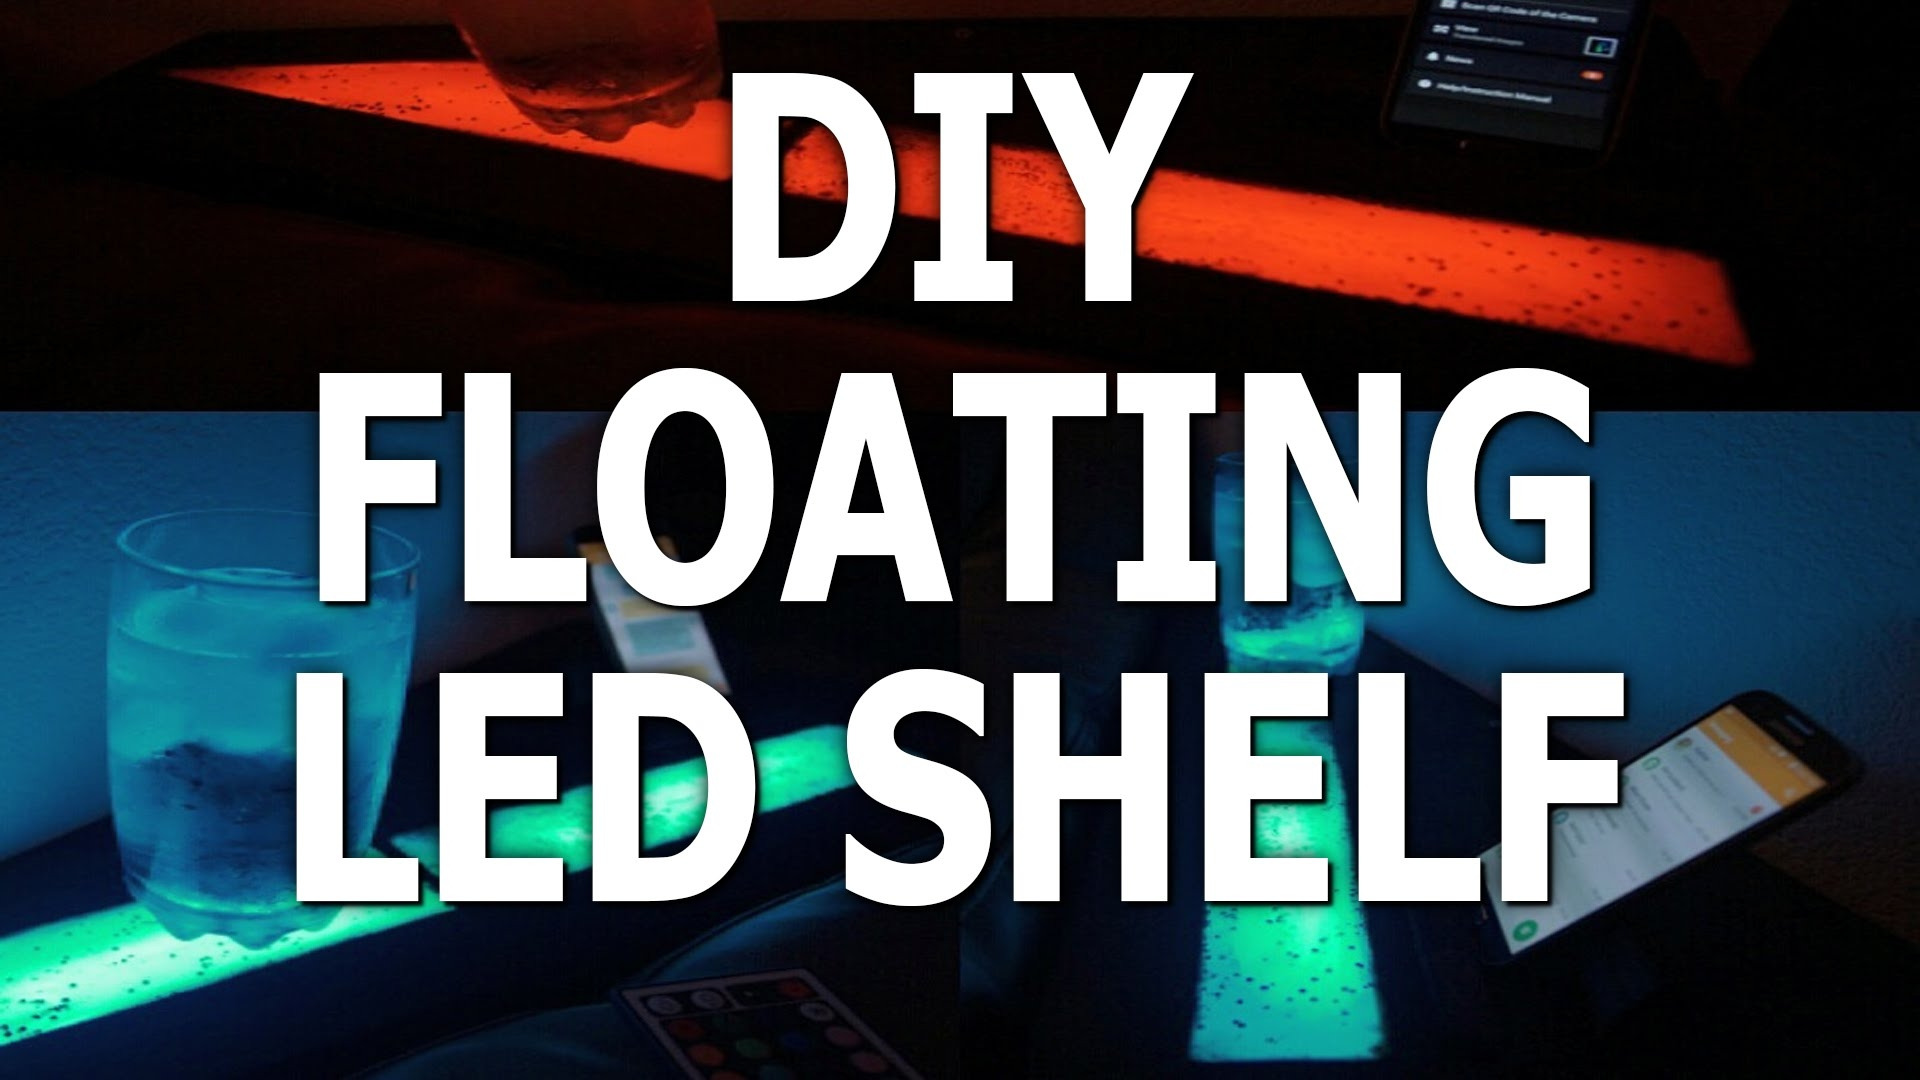 Led Strip Floating Shelf Furniture Lighting Youtube Intended For Led Floating Shelves (#12 of 12)